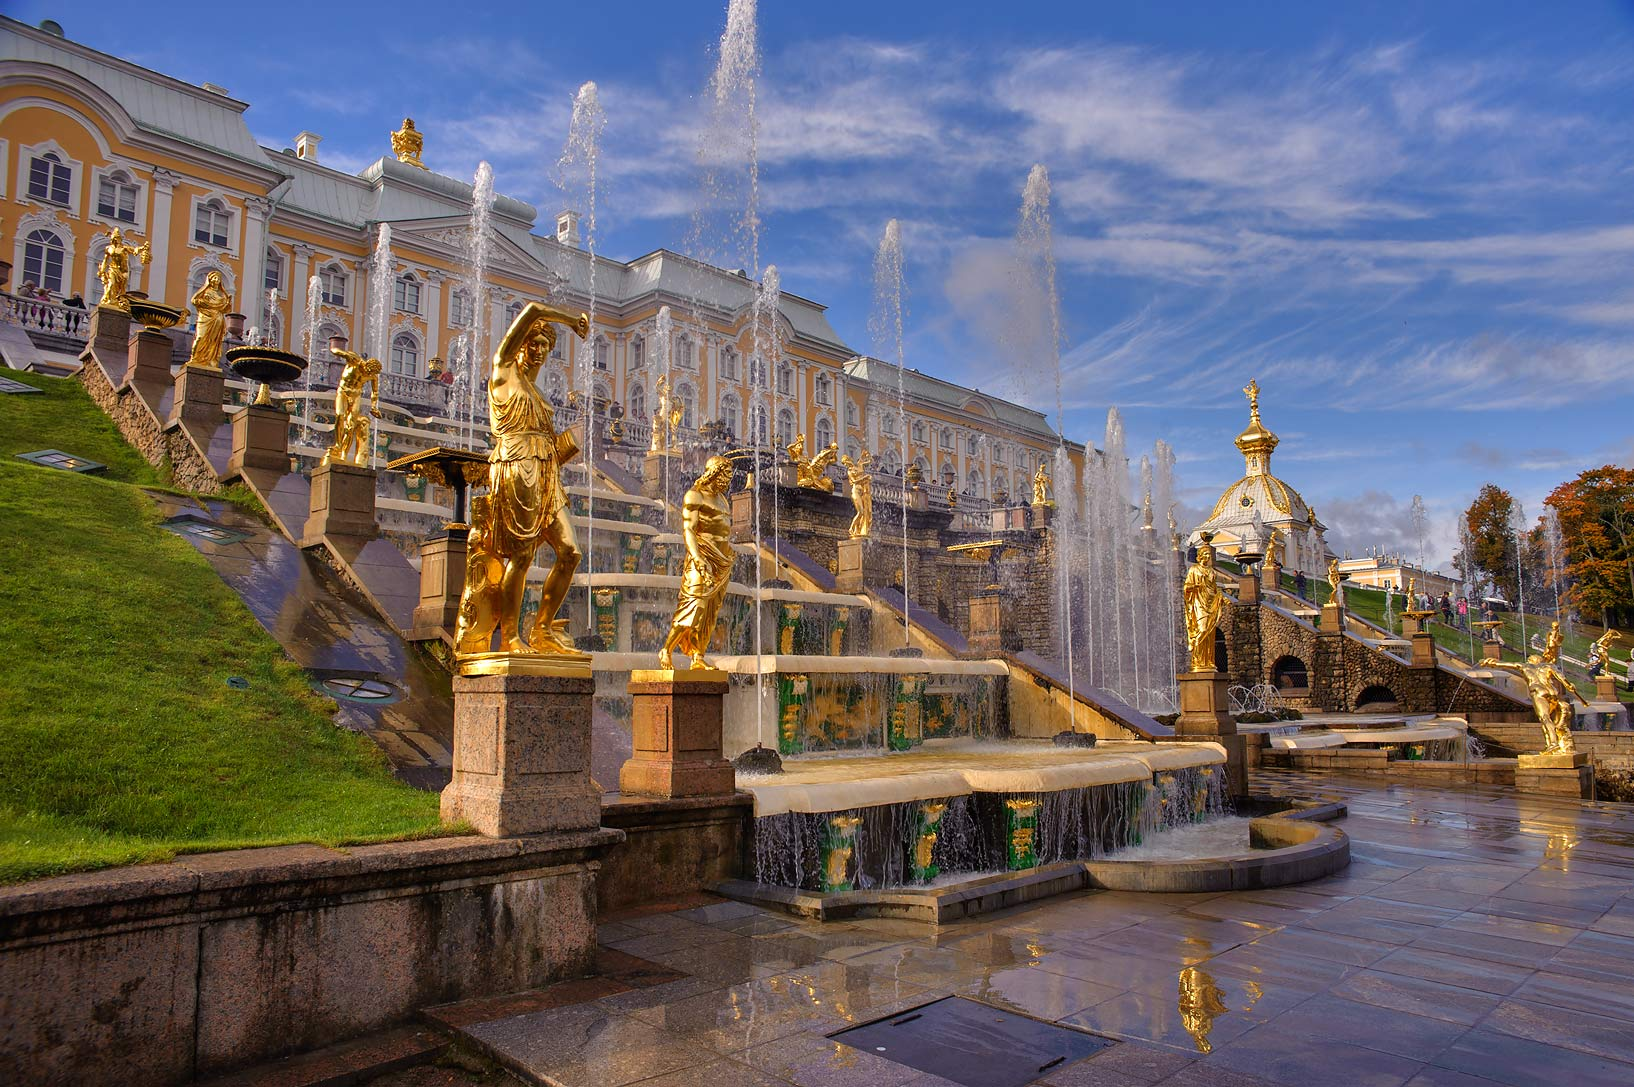 Grand Cascade in Lower Gardens. Peterhof (Petrodvorets), a suburb of St.Petersburg. Russia